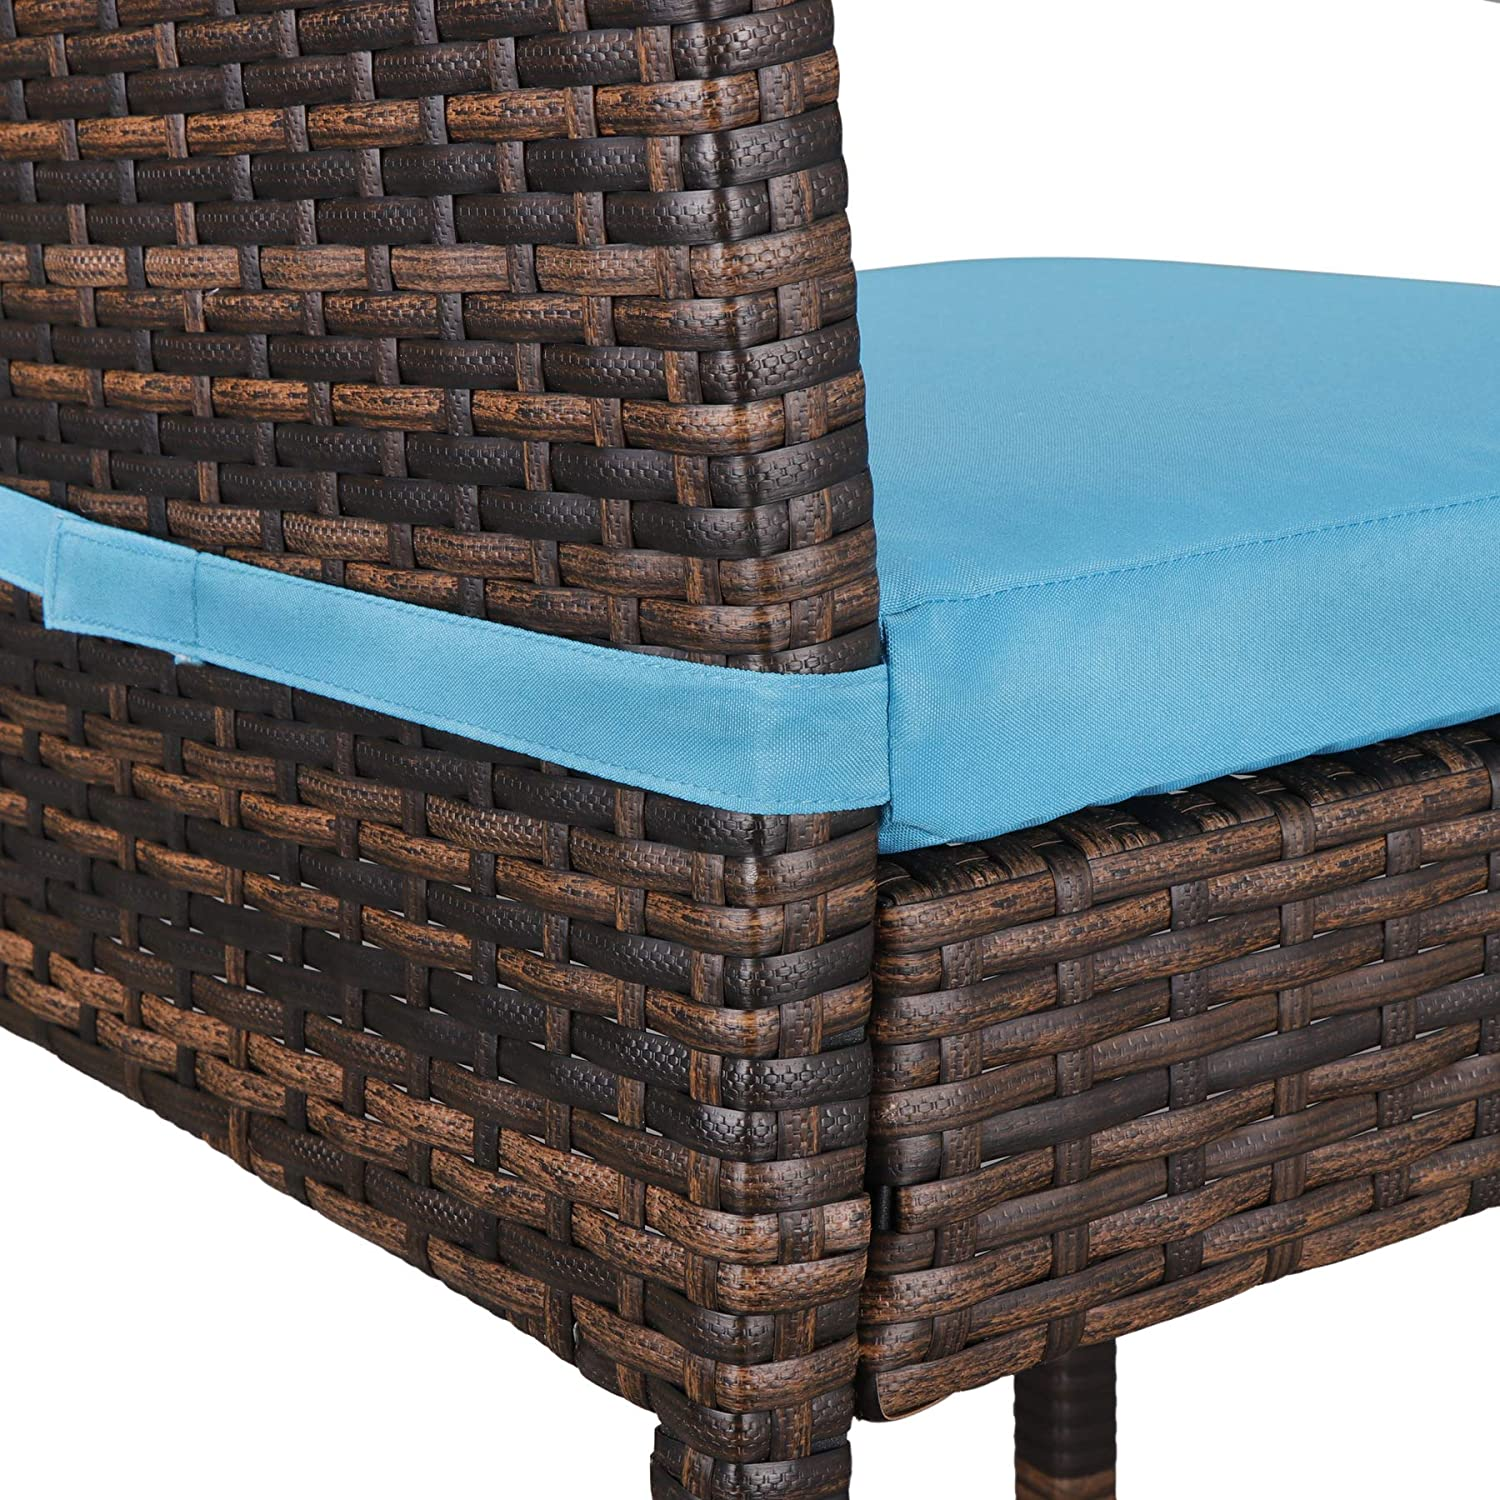 Amazon.com: Super Deal Outdoor Upgraded All Weather Wicker Bar ...